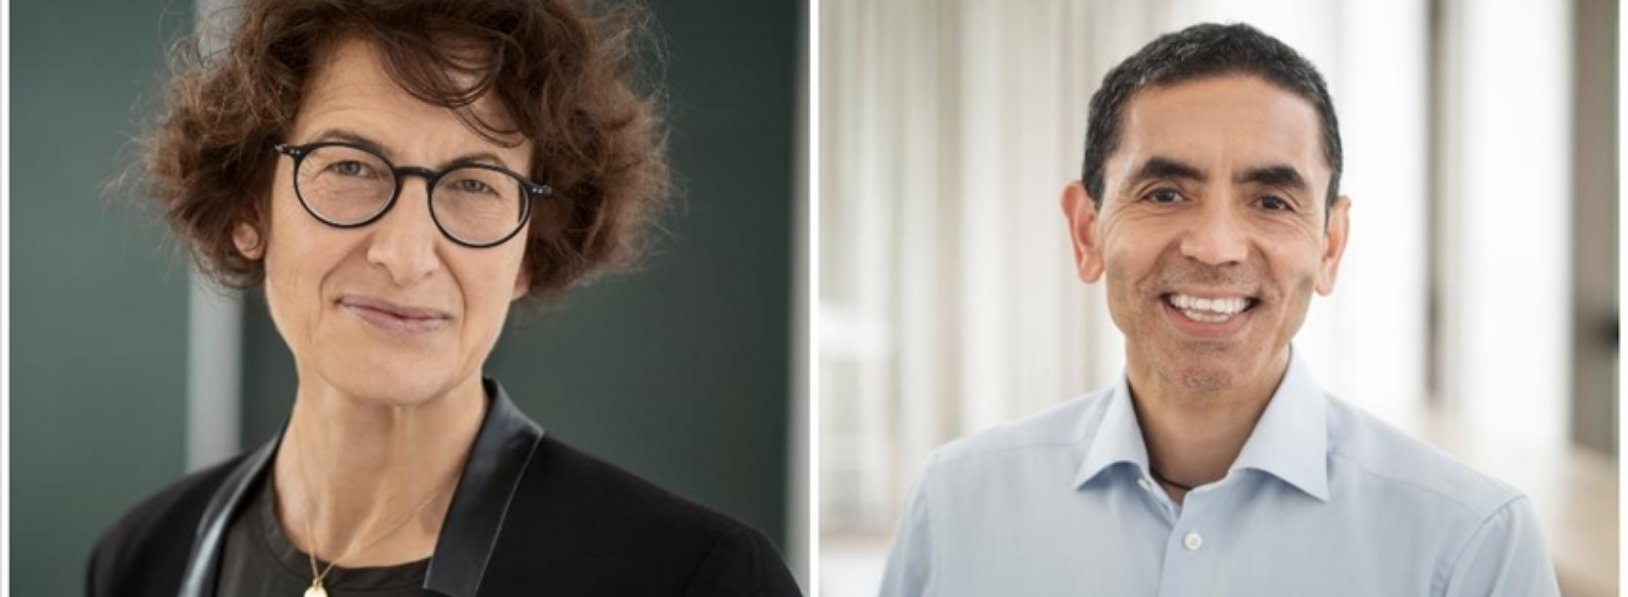 Prof. Dr. Uğur Şahin and his wife Dr. Özlem Türeci will be awarded an order of merit in Germany.